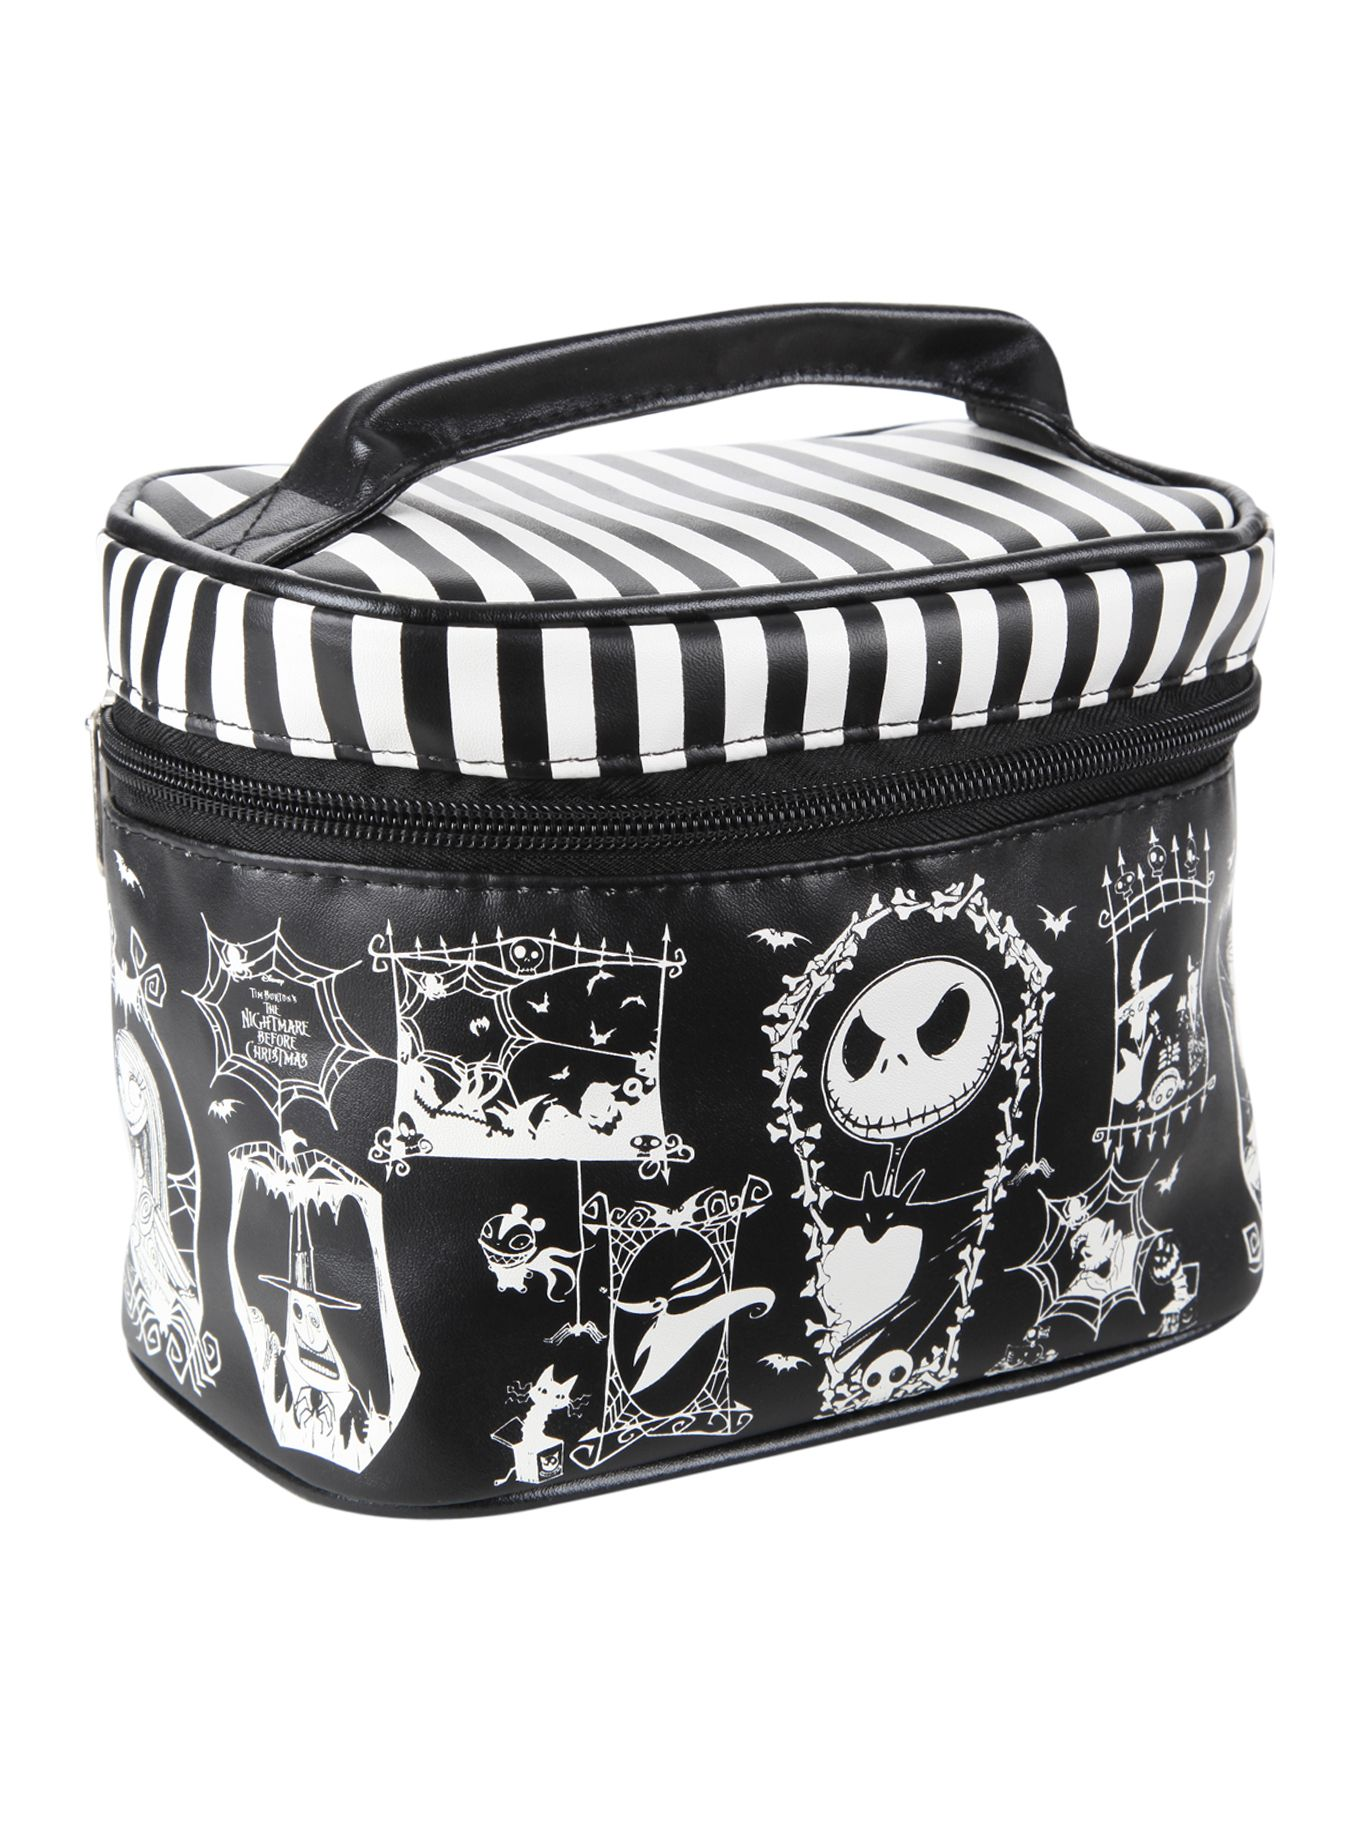 The Nightmare Before Christmas Train Case | Hot Topic | MUSƬ Oвтαιη ...